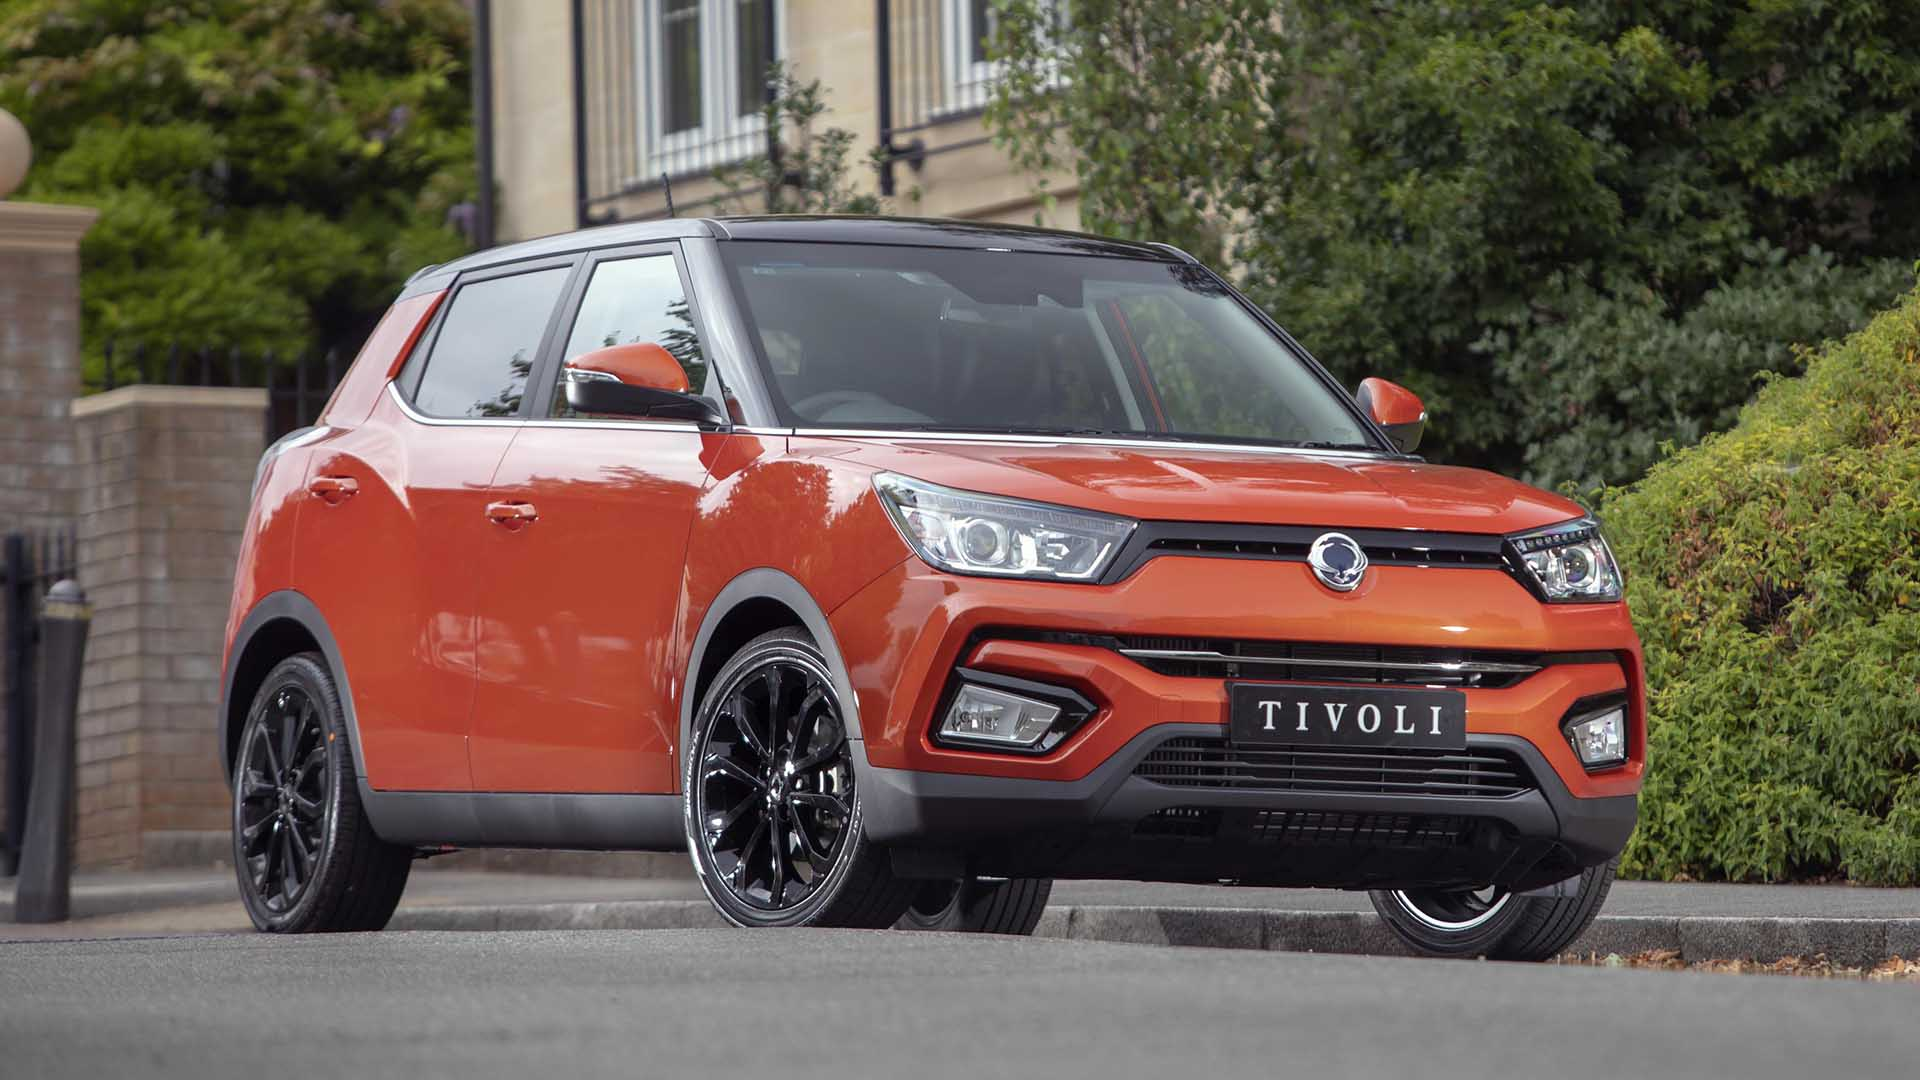 SsangYong Tivoli – from £13,995